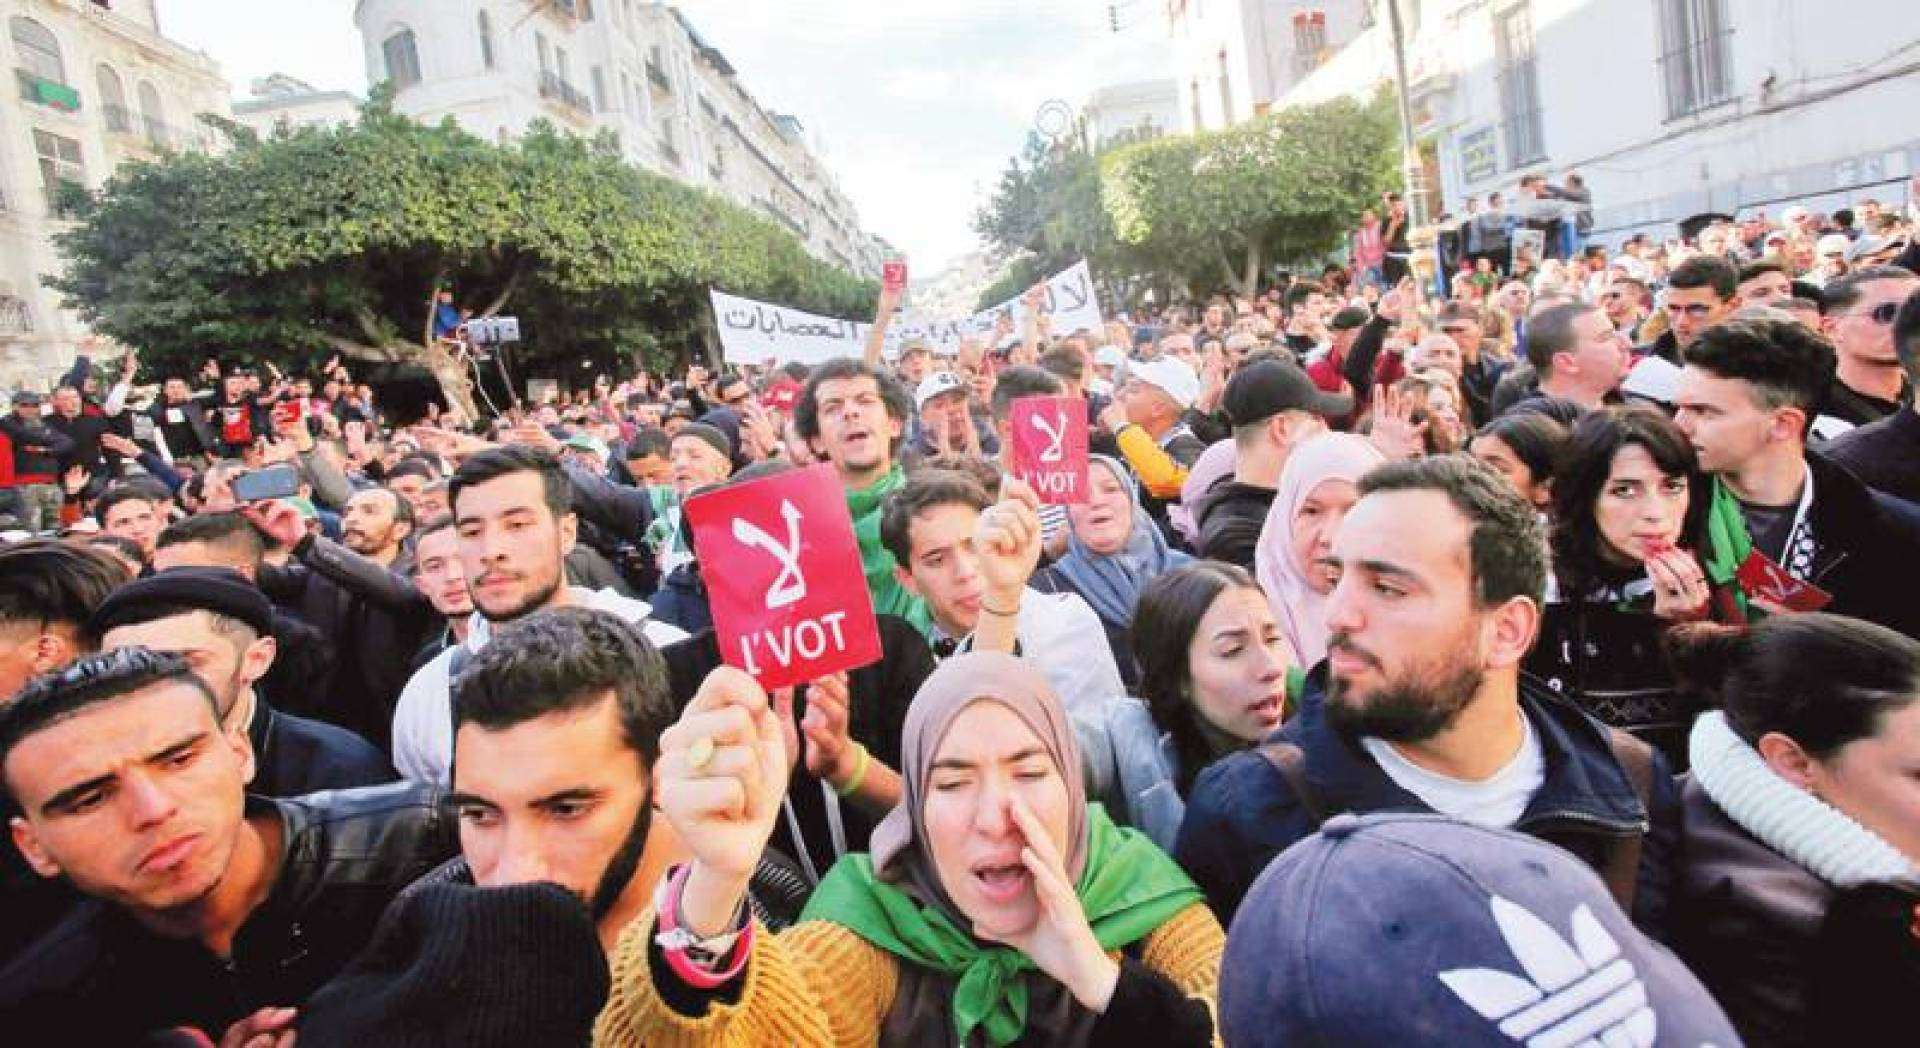 Algeria: Elections can't be sham and authorities should not impose their will on Algerians